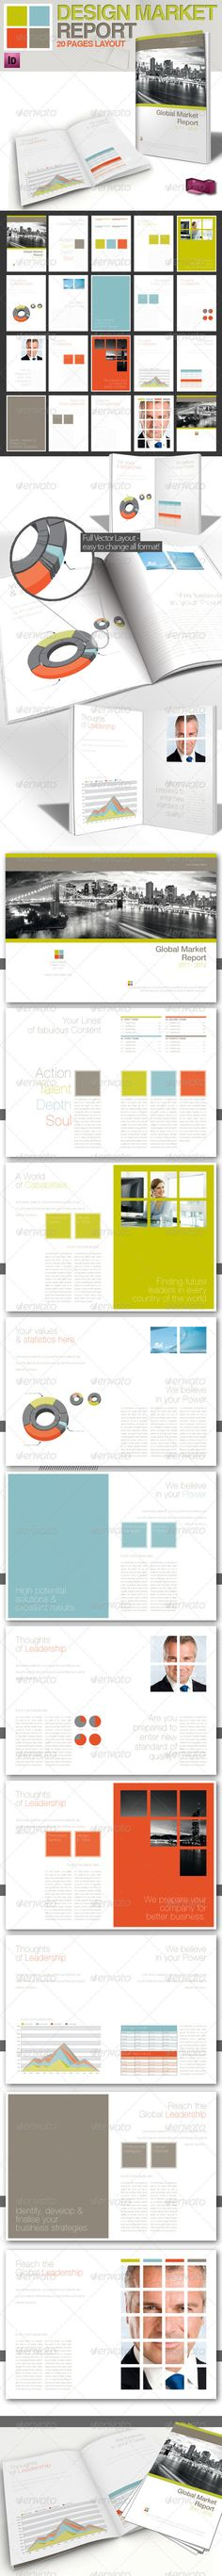 Professional Magazine Template // A4 // 4 Colors Get the source files for download: http://graphicriver.net/item/professional-magazine-template-a4-4-colors/1083744